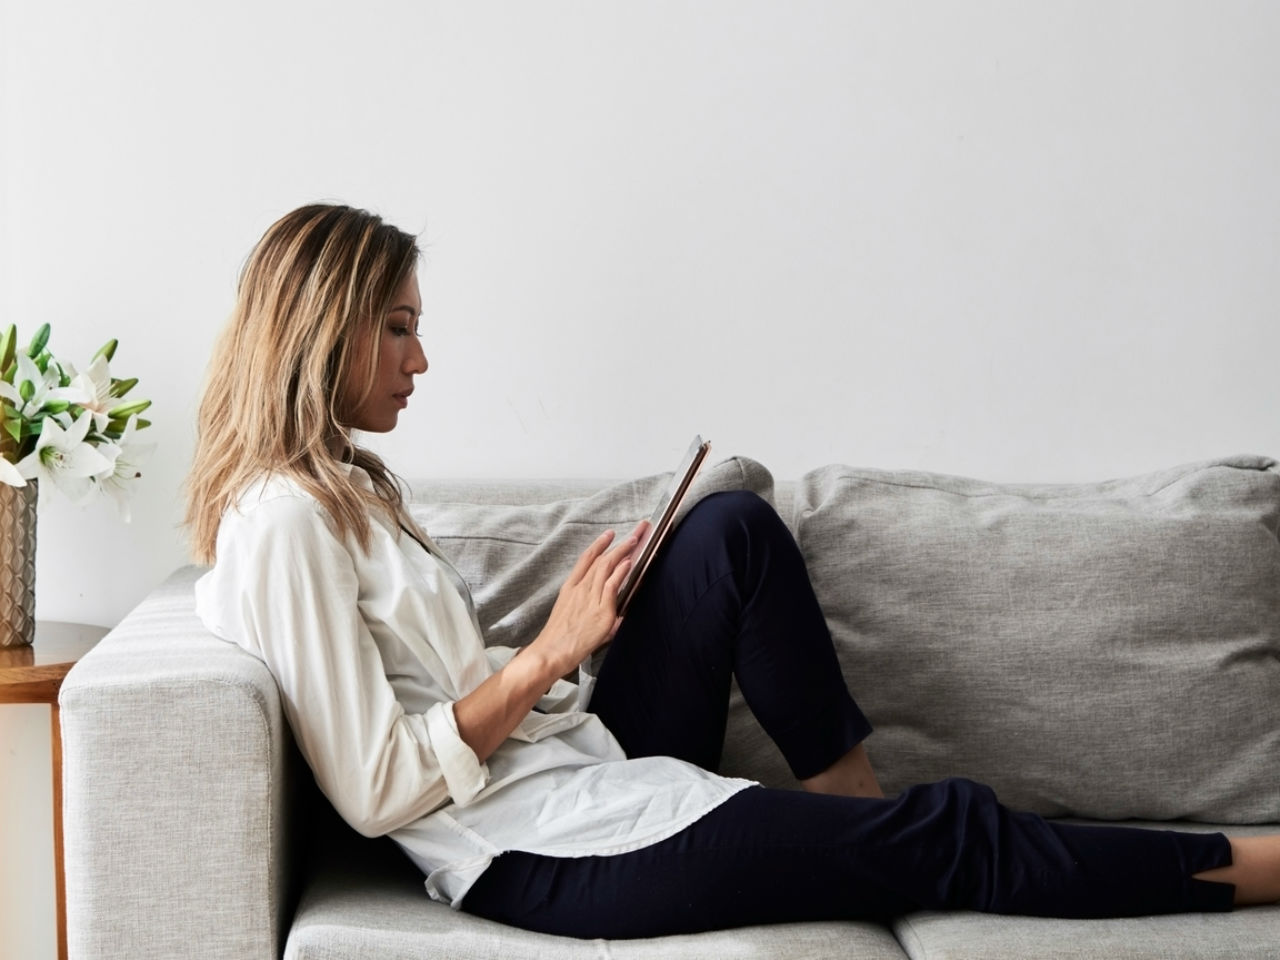 A woman sitting on a couch, using a tablet